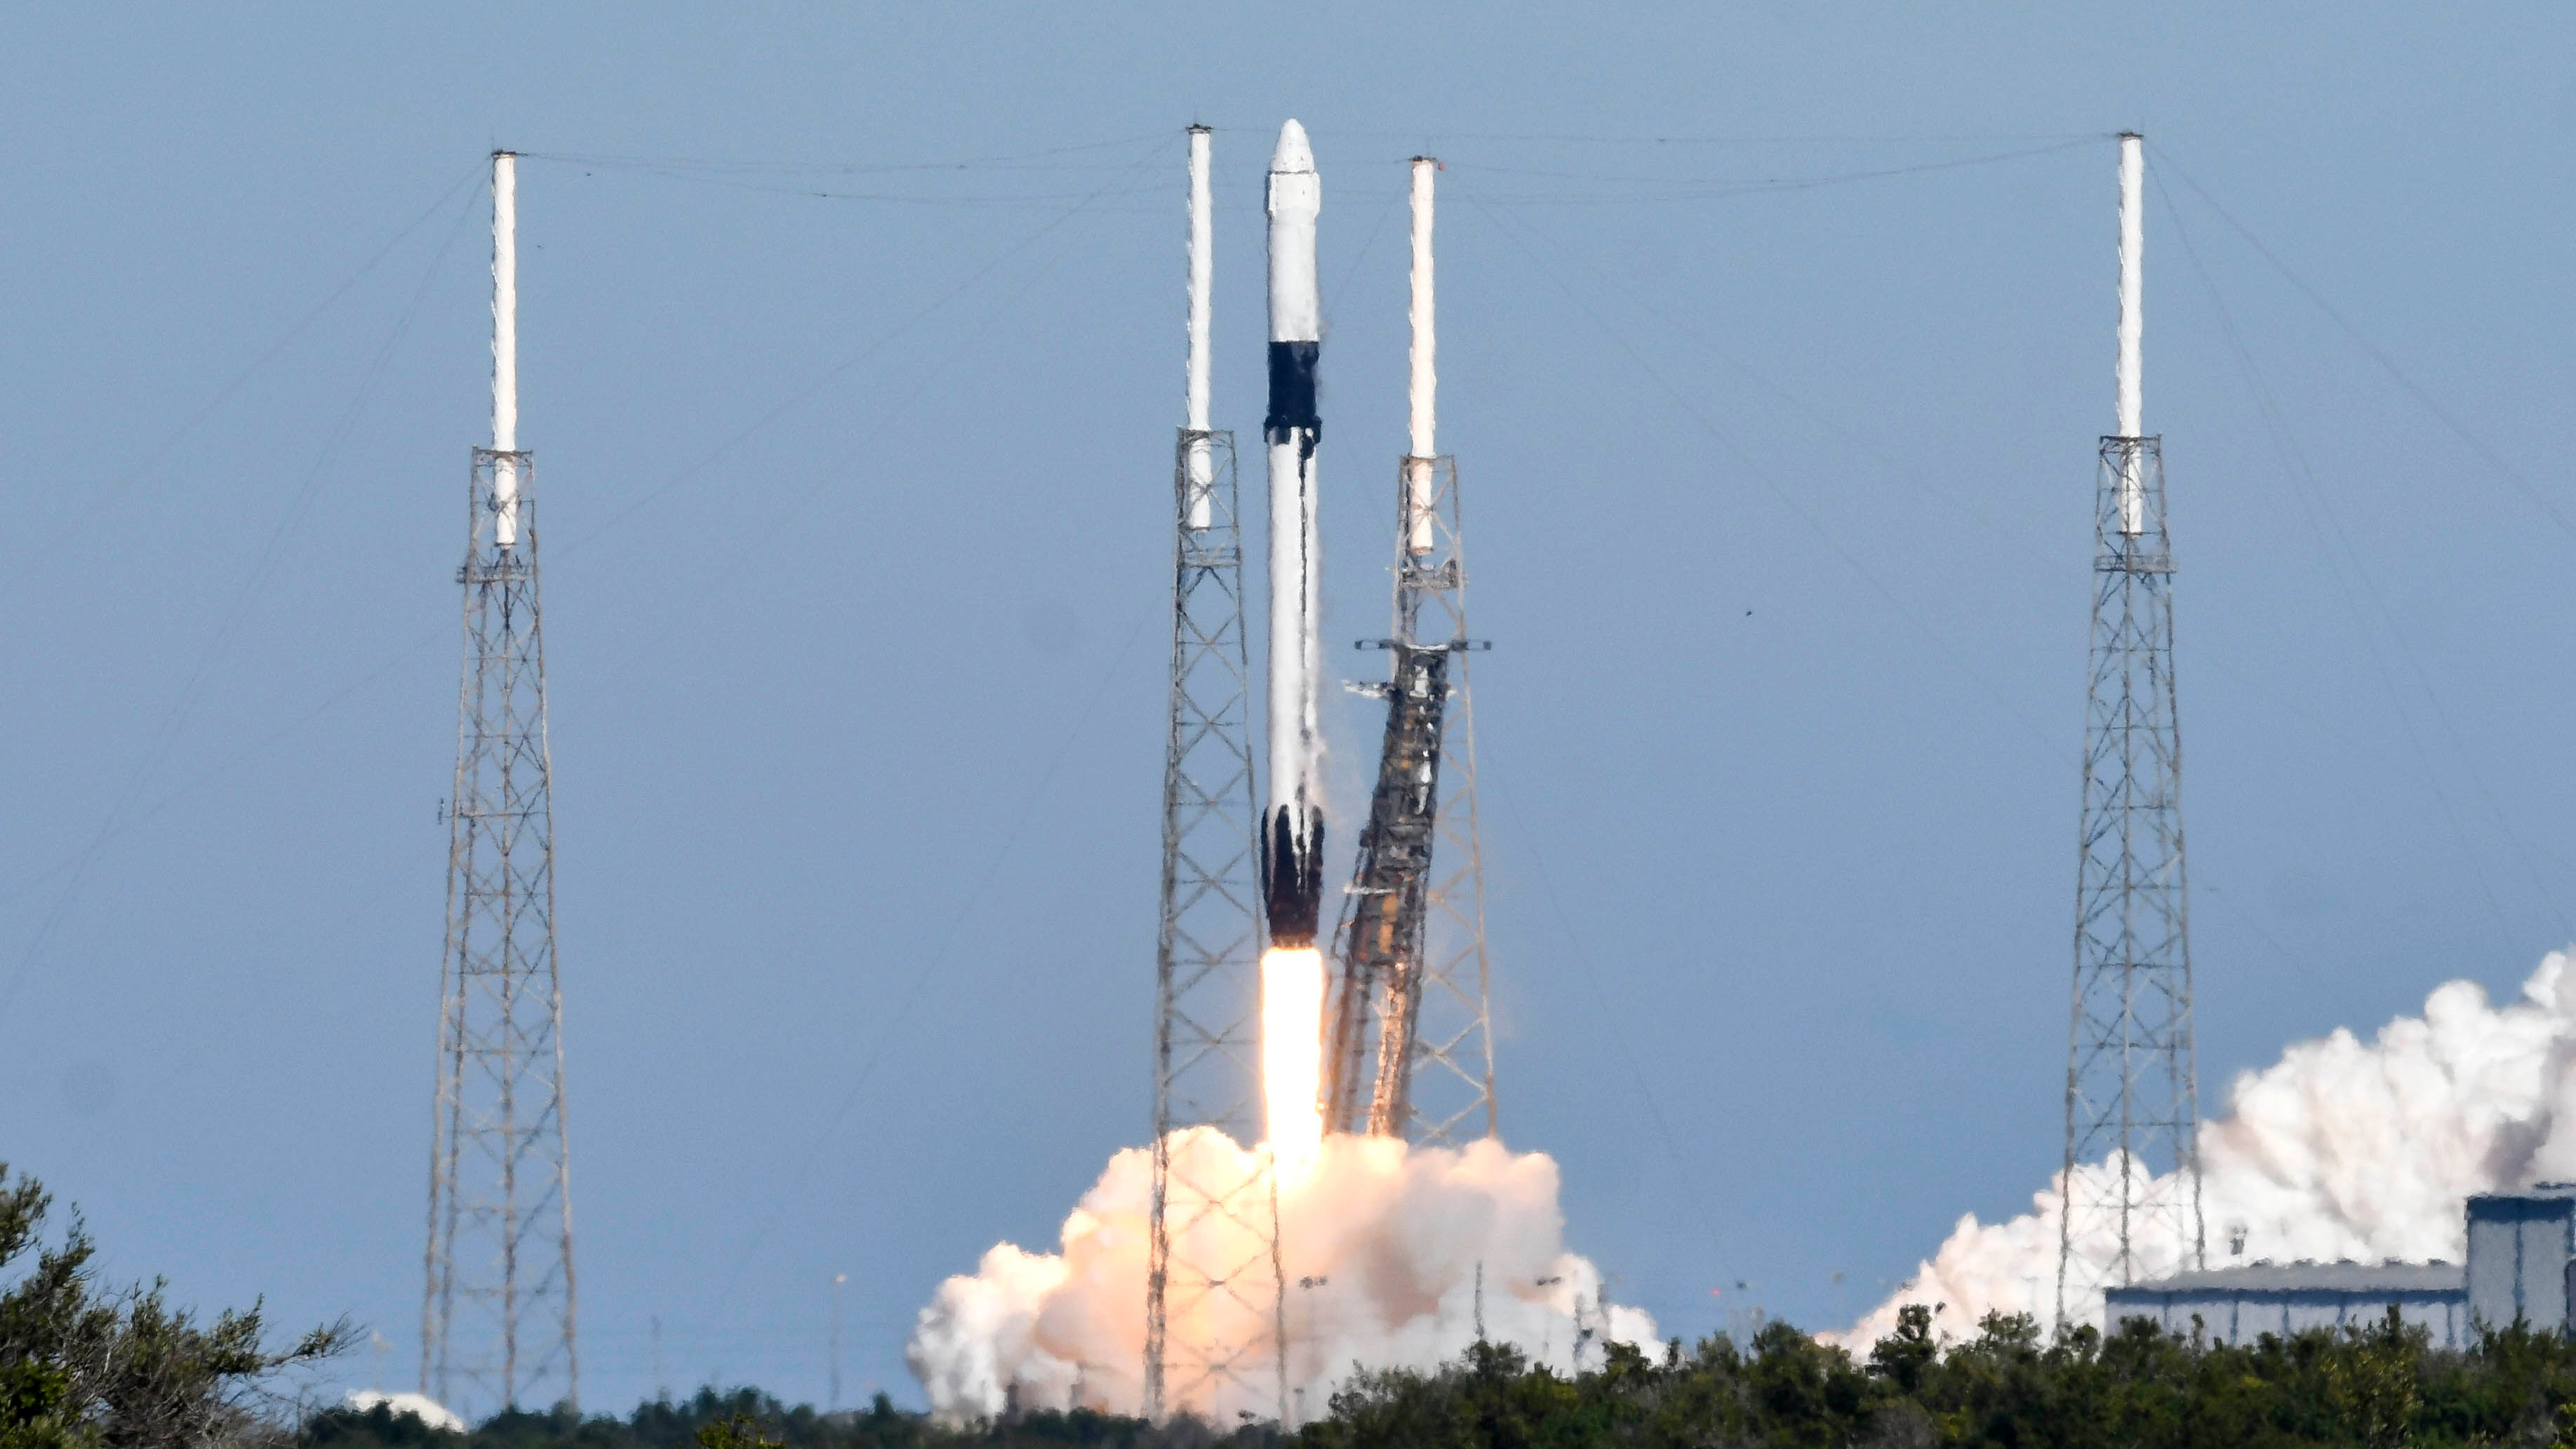 A SpaceX Falcon 9 rocket lifts off from Complex 40 at Cape Canaveral Air Force Station Wednesday, Dec. 5, 2018. The rocket is carrying supplies for the International Space Station.